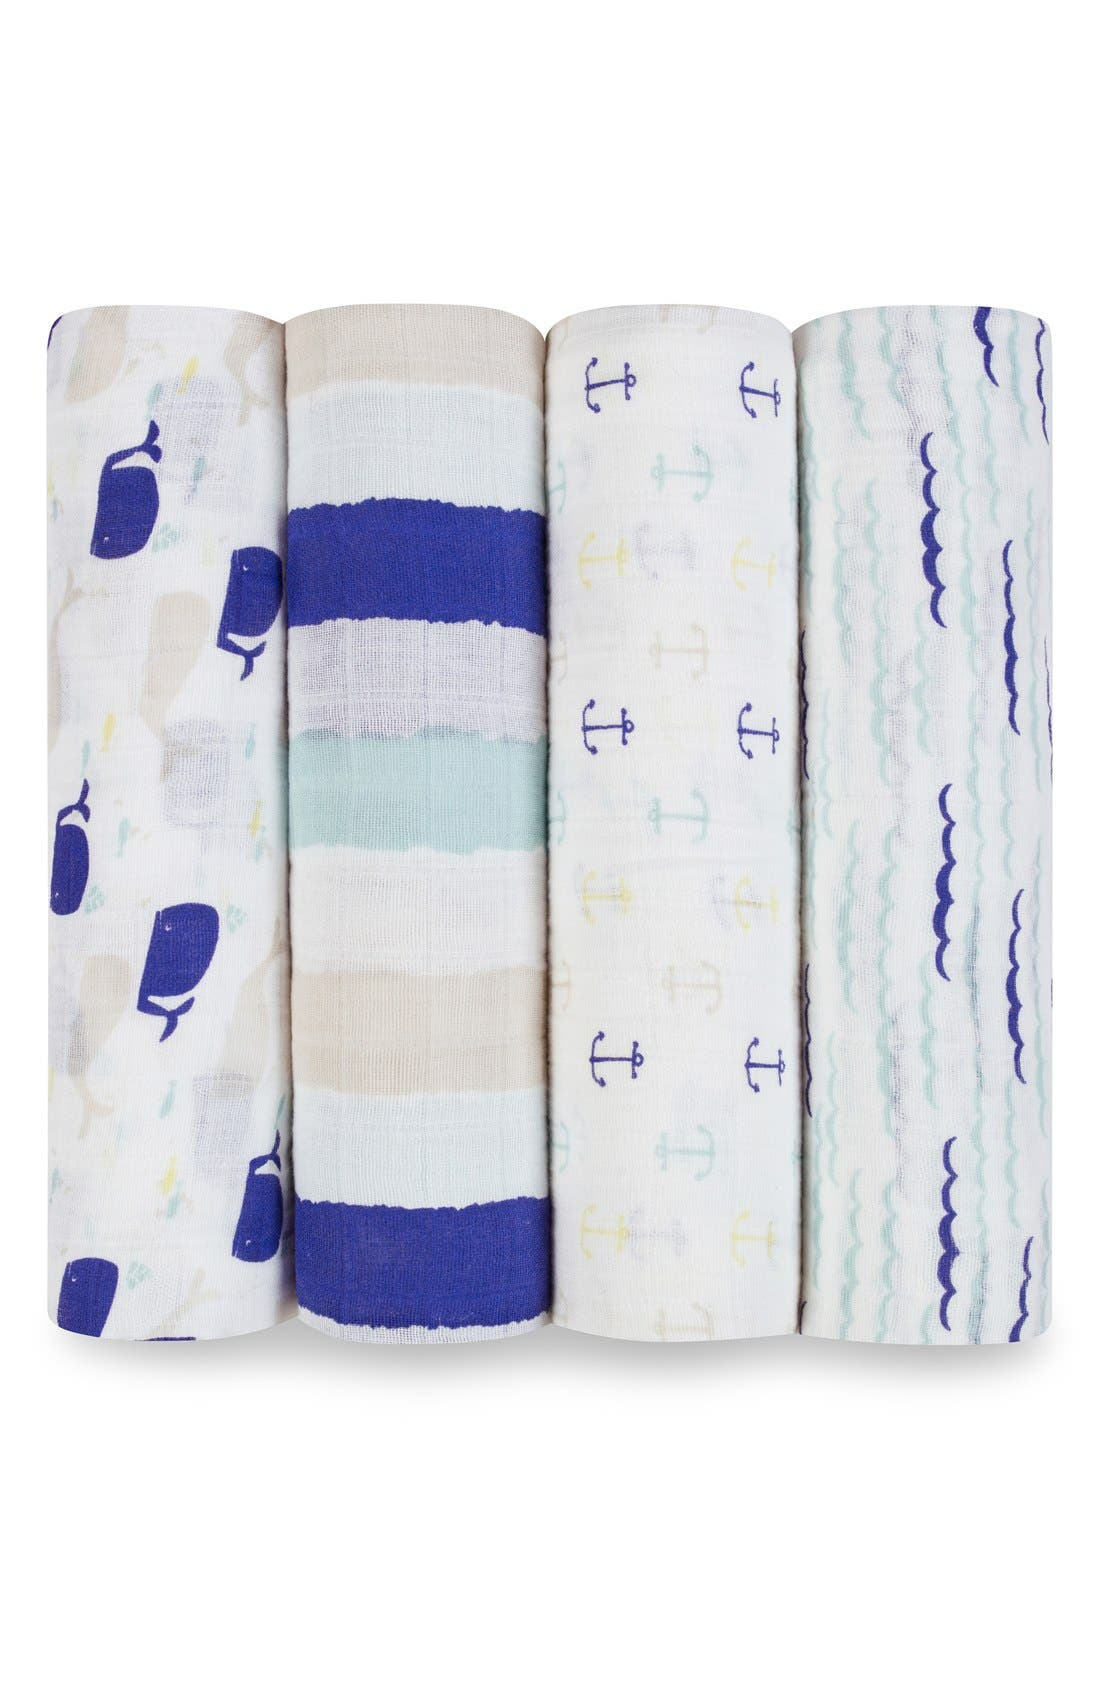 aden + anais Swaddling Cloths (4-Pack)